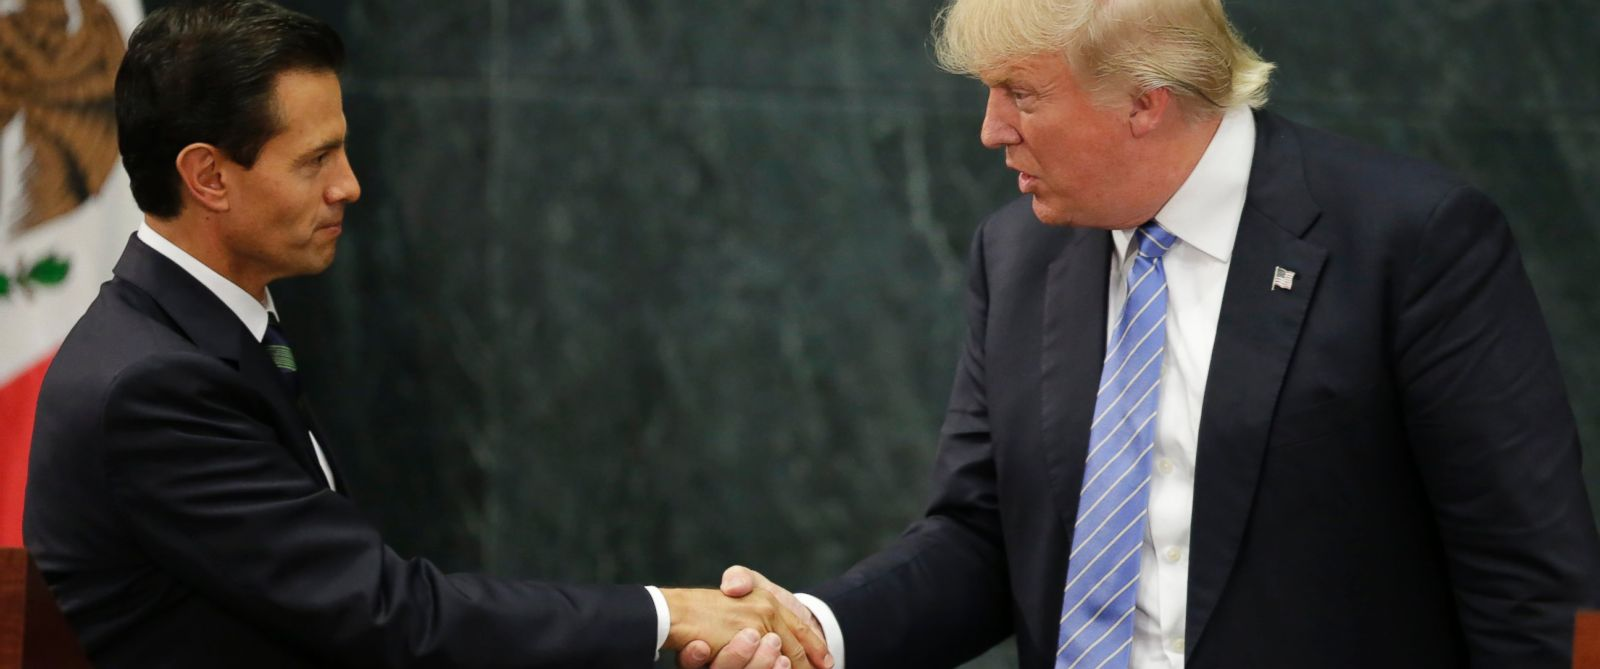 PHOTO: Then-presidential nominee Donald Trump and Mexicos President Enrique Pena Nieto shake hands at a press conference at the Los Pinos residence in Mexico City, Mexico, Aug. 31, 2016.